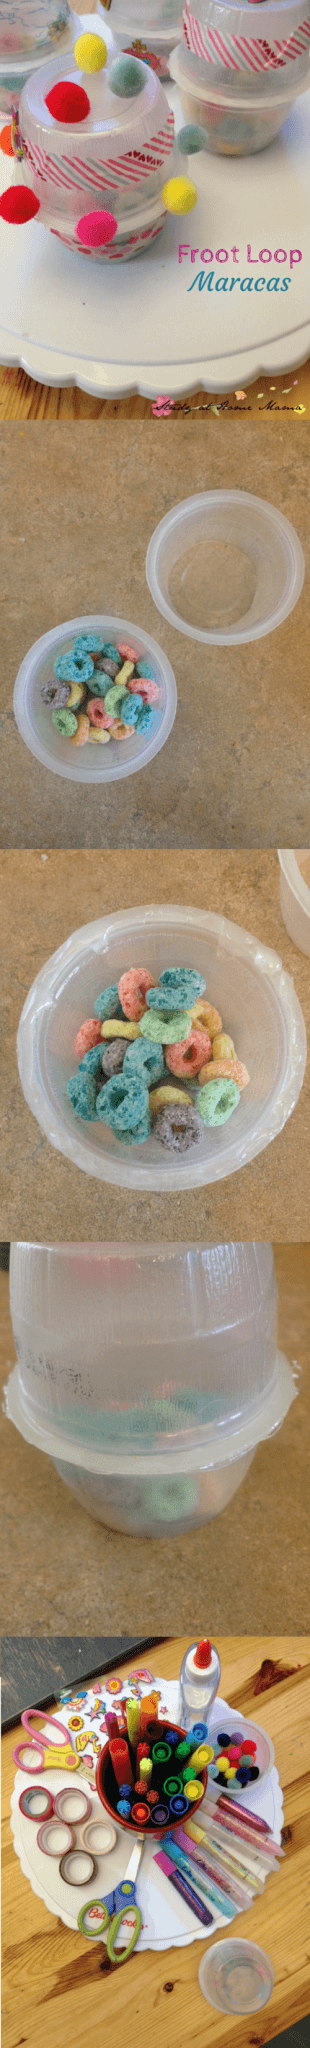 How to Make a Froot Loop Maraca Upcycled Craft for Kids